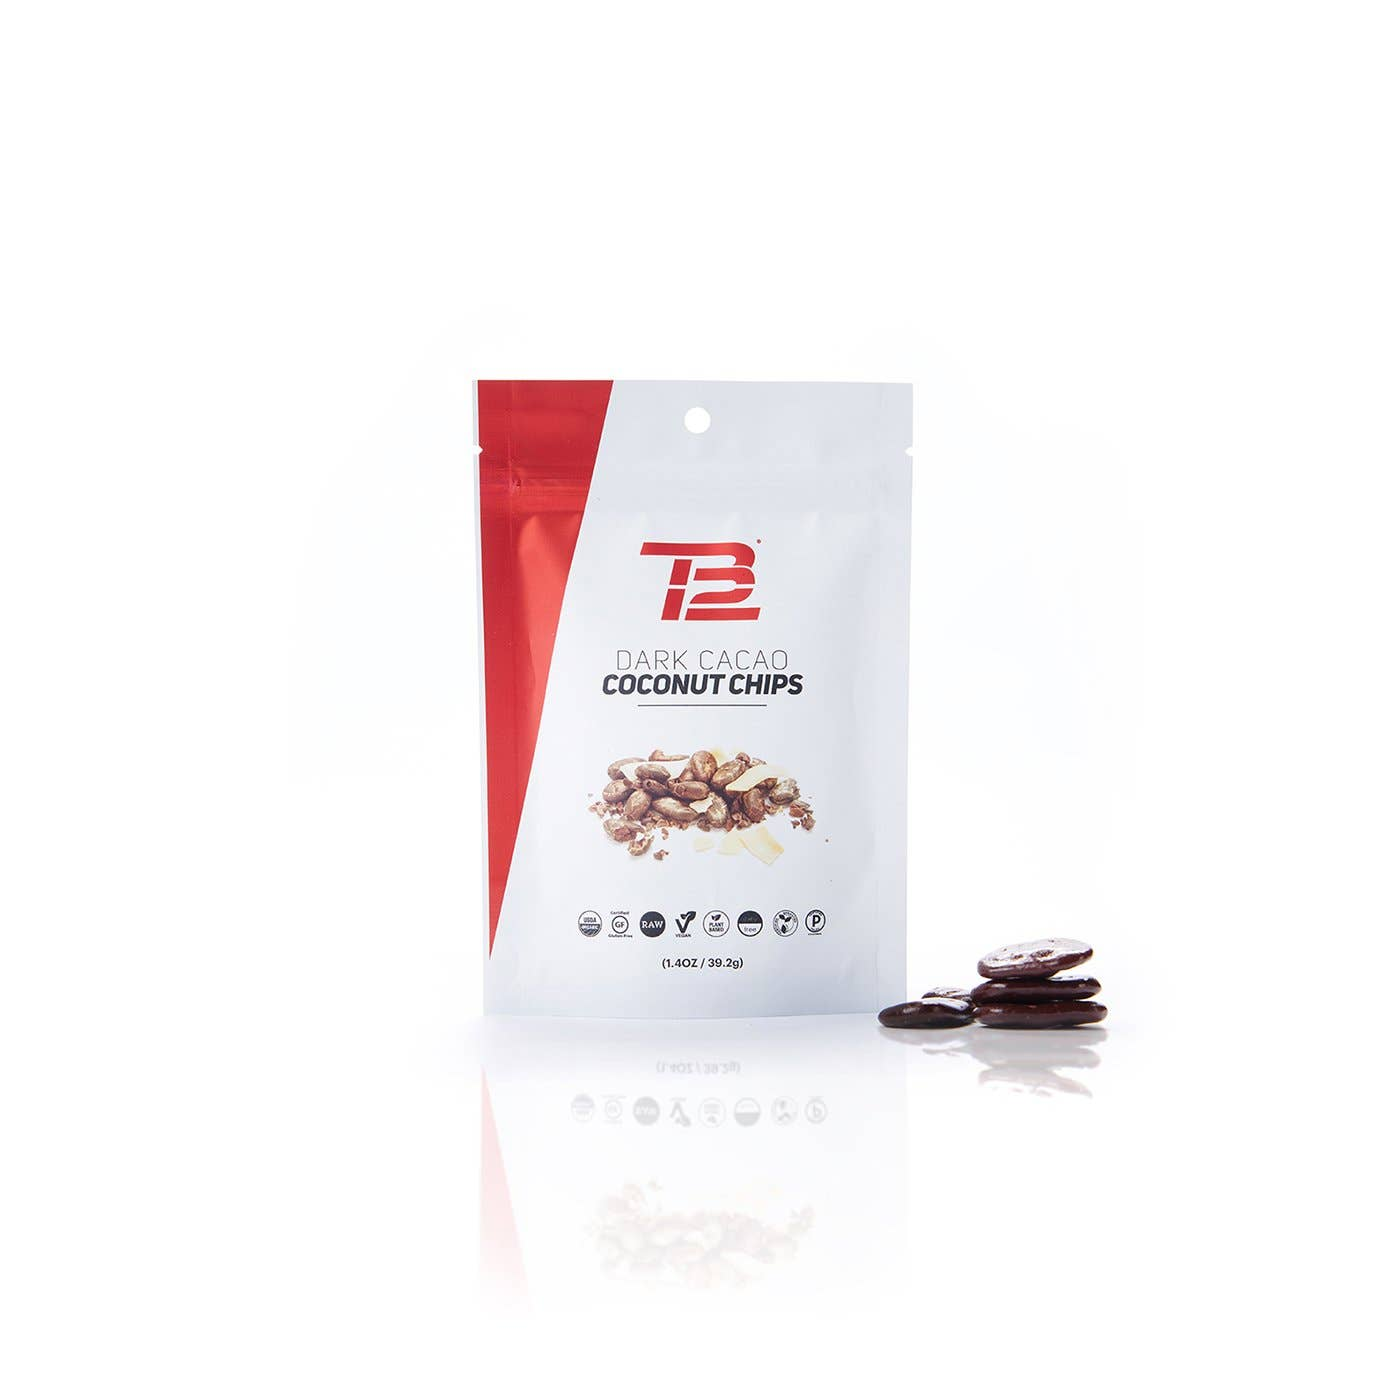 TB12™ Dark Cacao Coconut Chips front